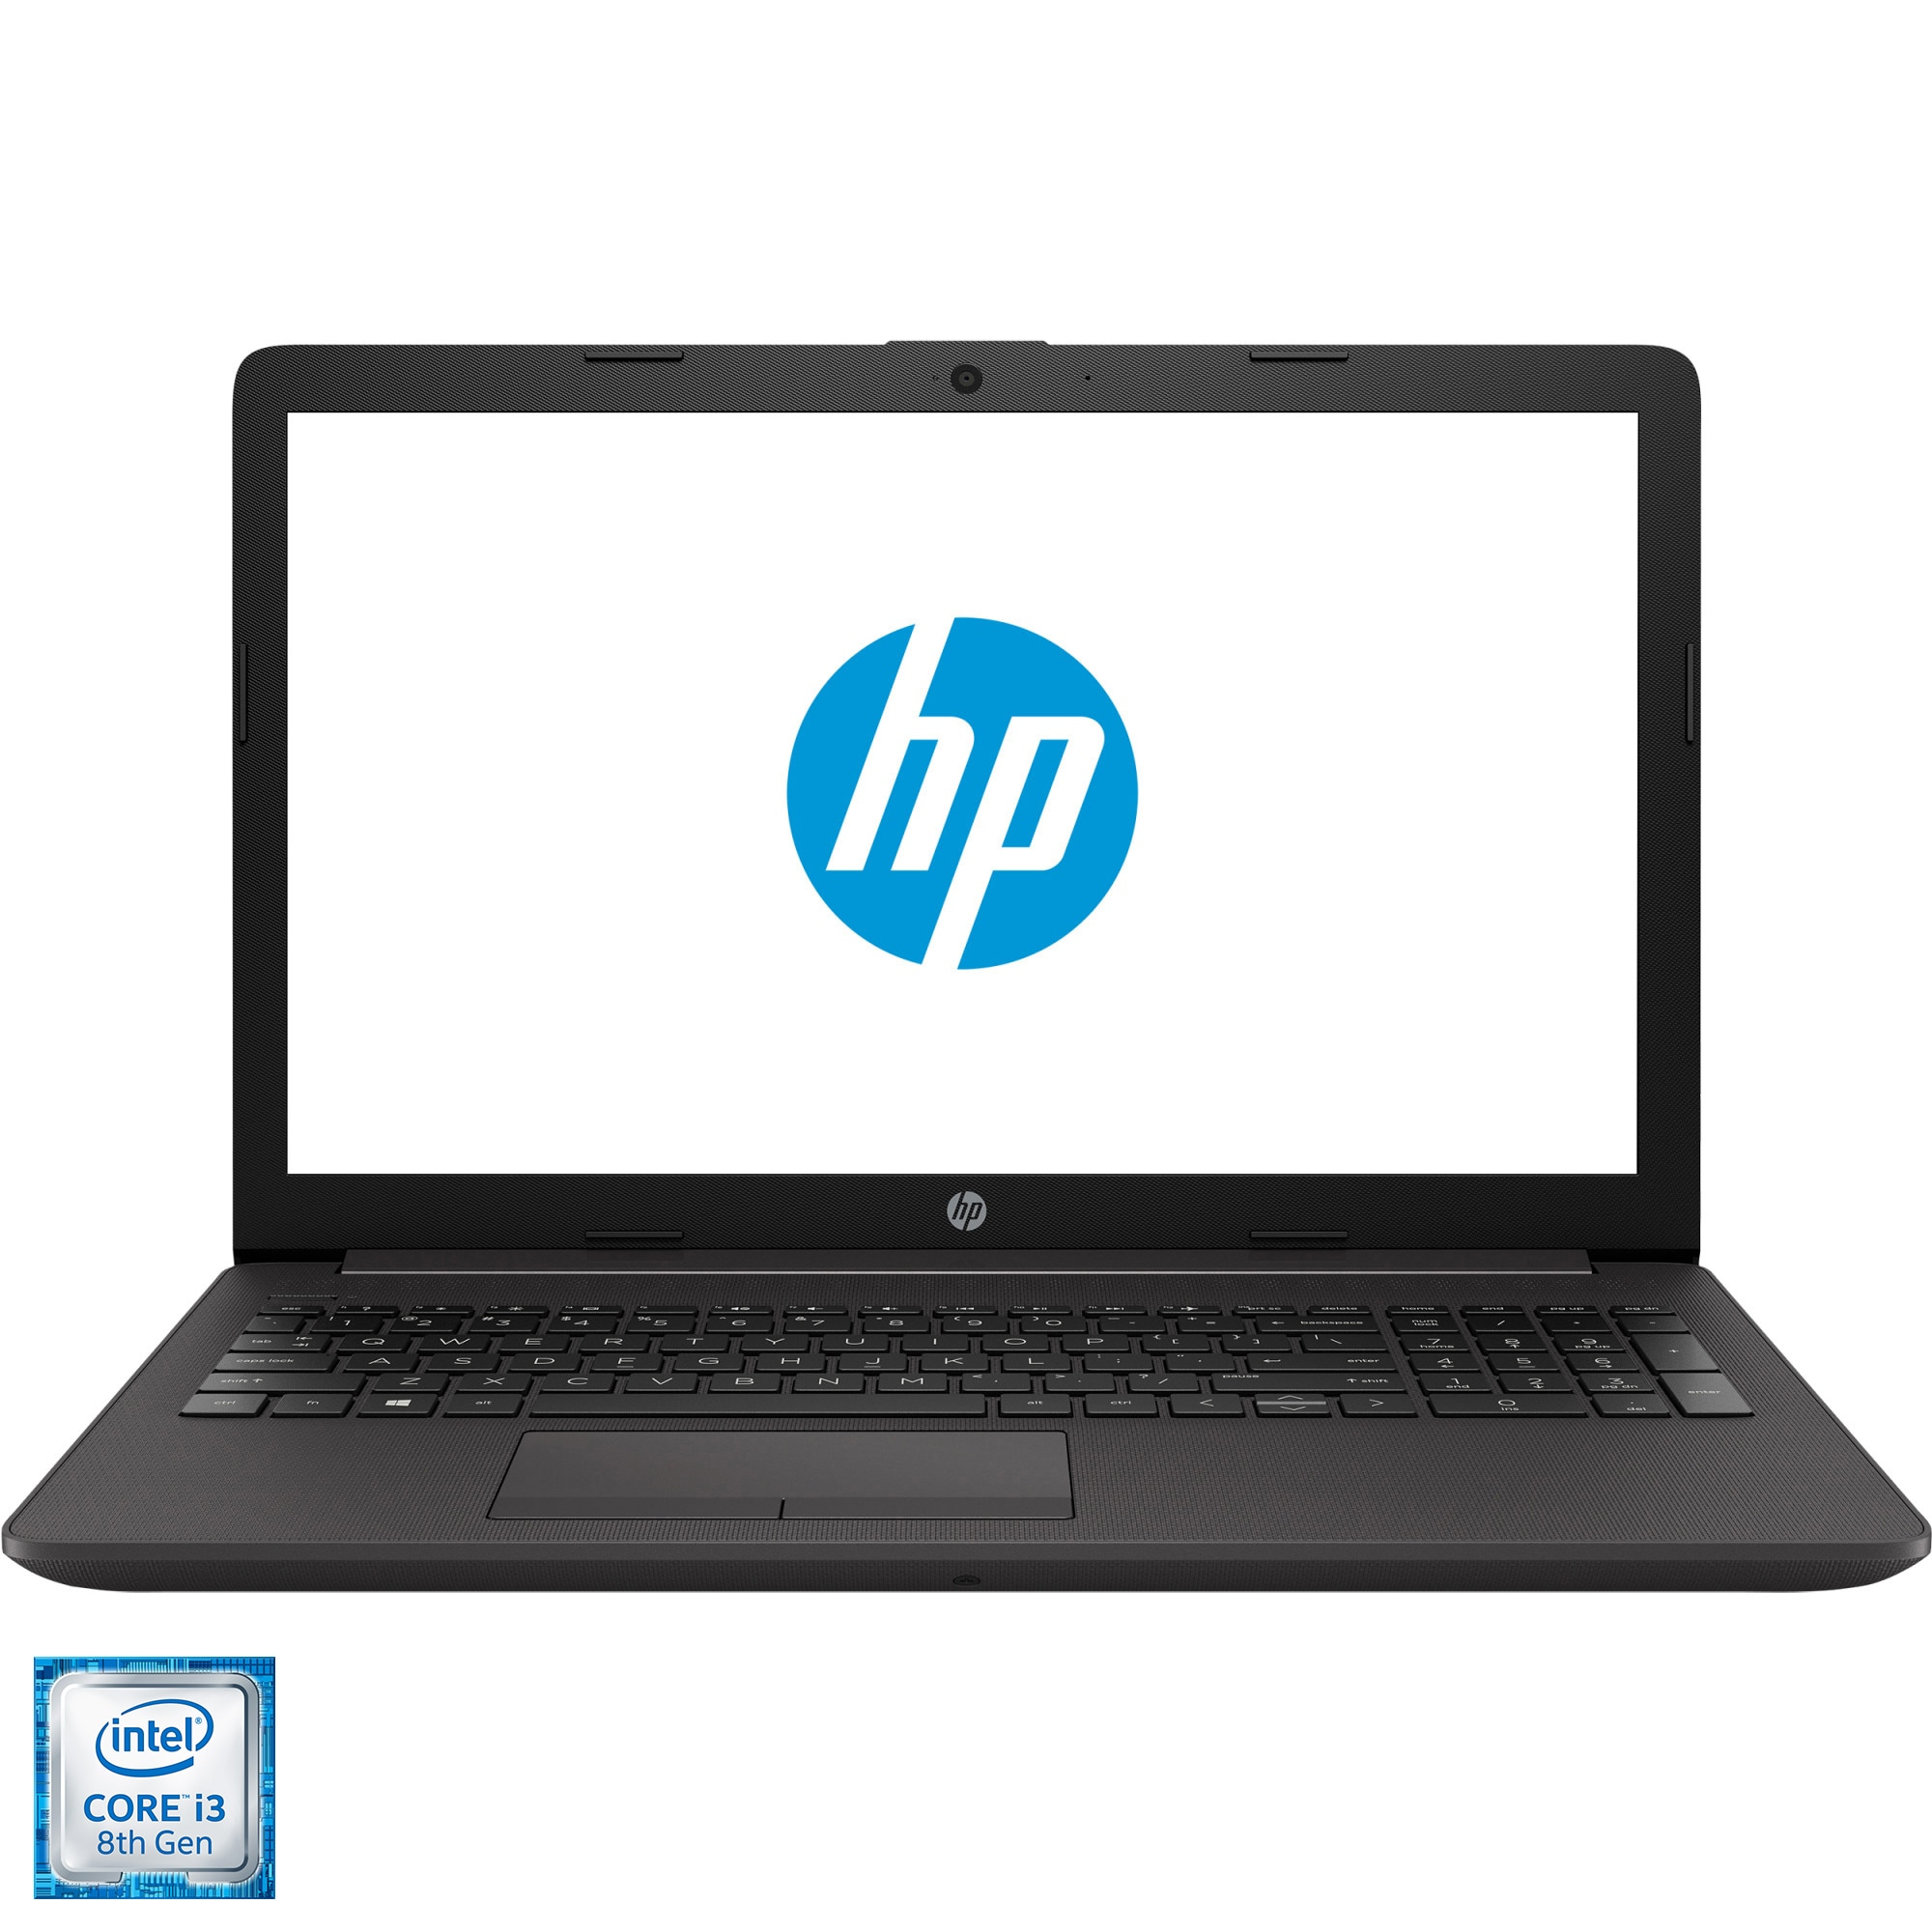 "Fotografie Laptop HP 250 G7 cu procesor Intel® Core™ i3-8130U pana la 3.40 GHz, 15.6"", Full HD, 8GB, 256GB SSD, NVIDIA® GeForce® MX110 2GB, Free DOS, Dark ash silver"